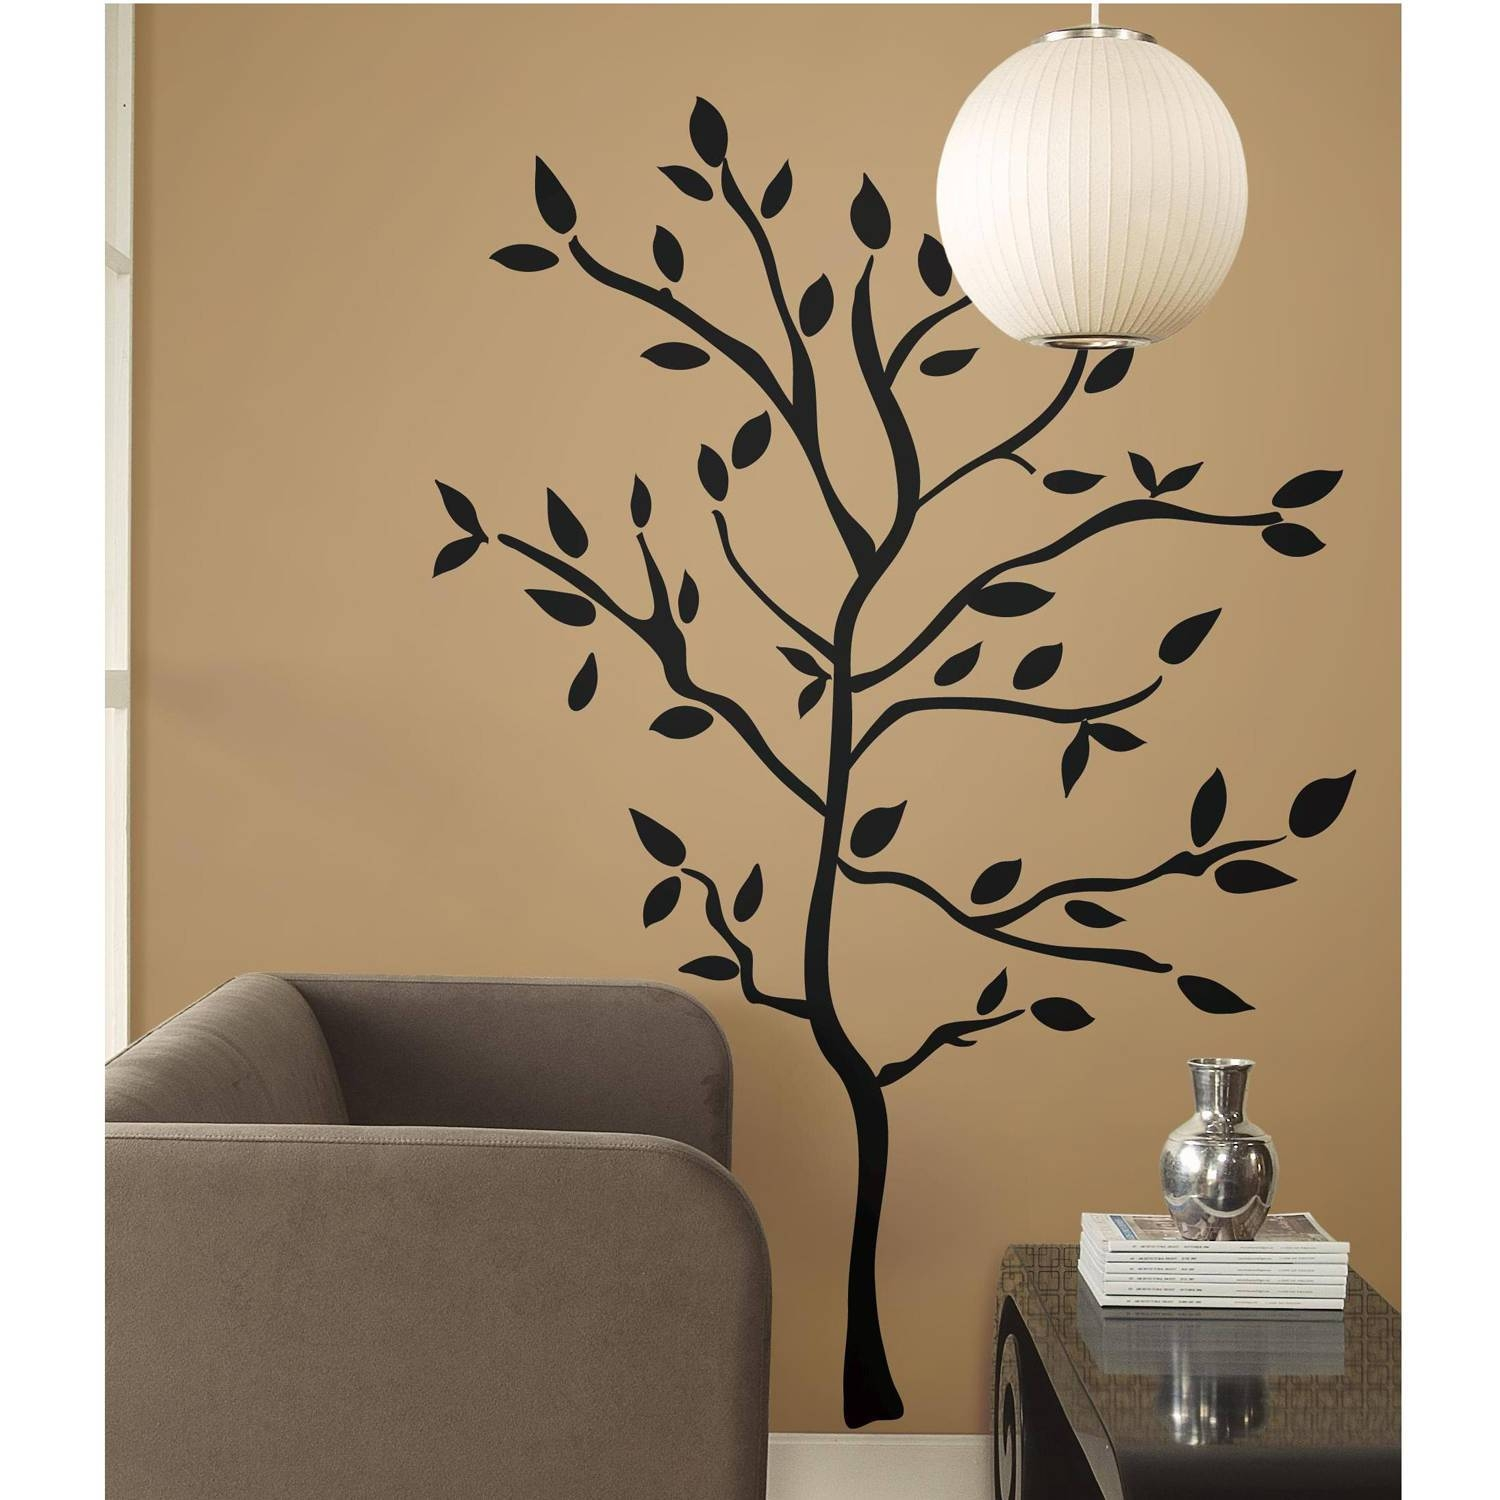 Tree Branches Peel And Stick Wall Decals – Walmart Regarding 2017 3D Wall Art Walmart (View 16 of 20)